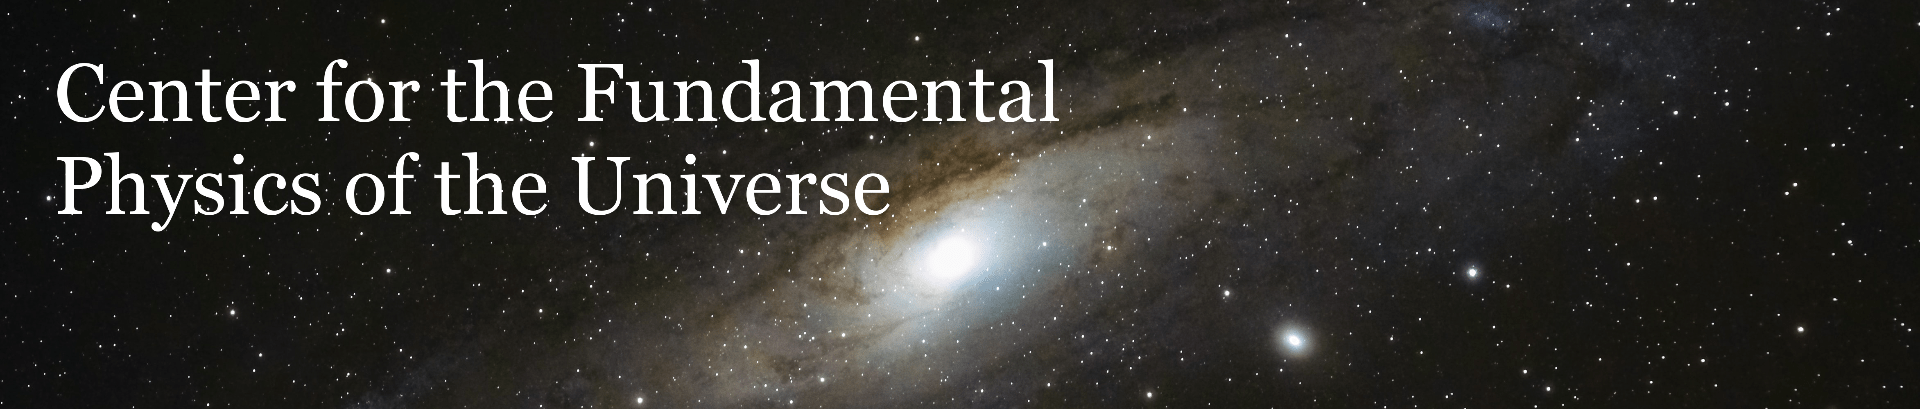 Center for the Fundamental Physics of the Universe